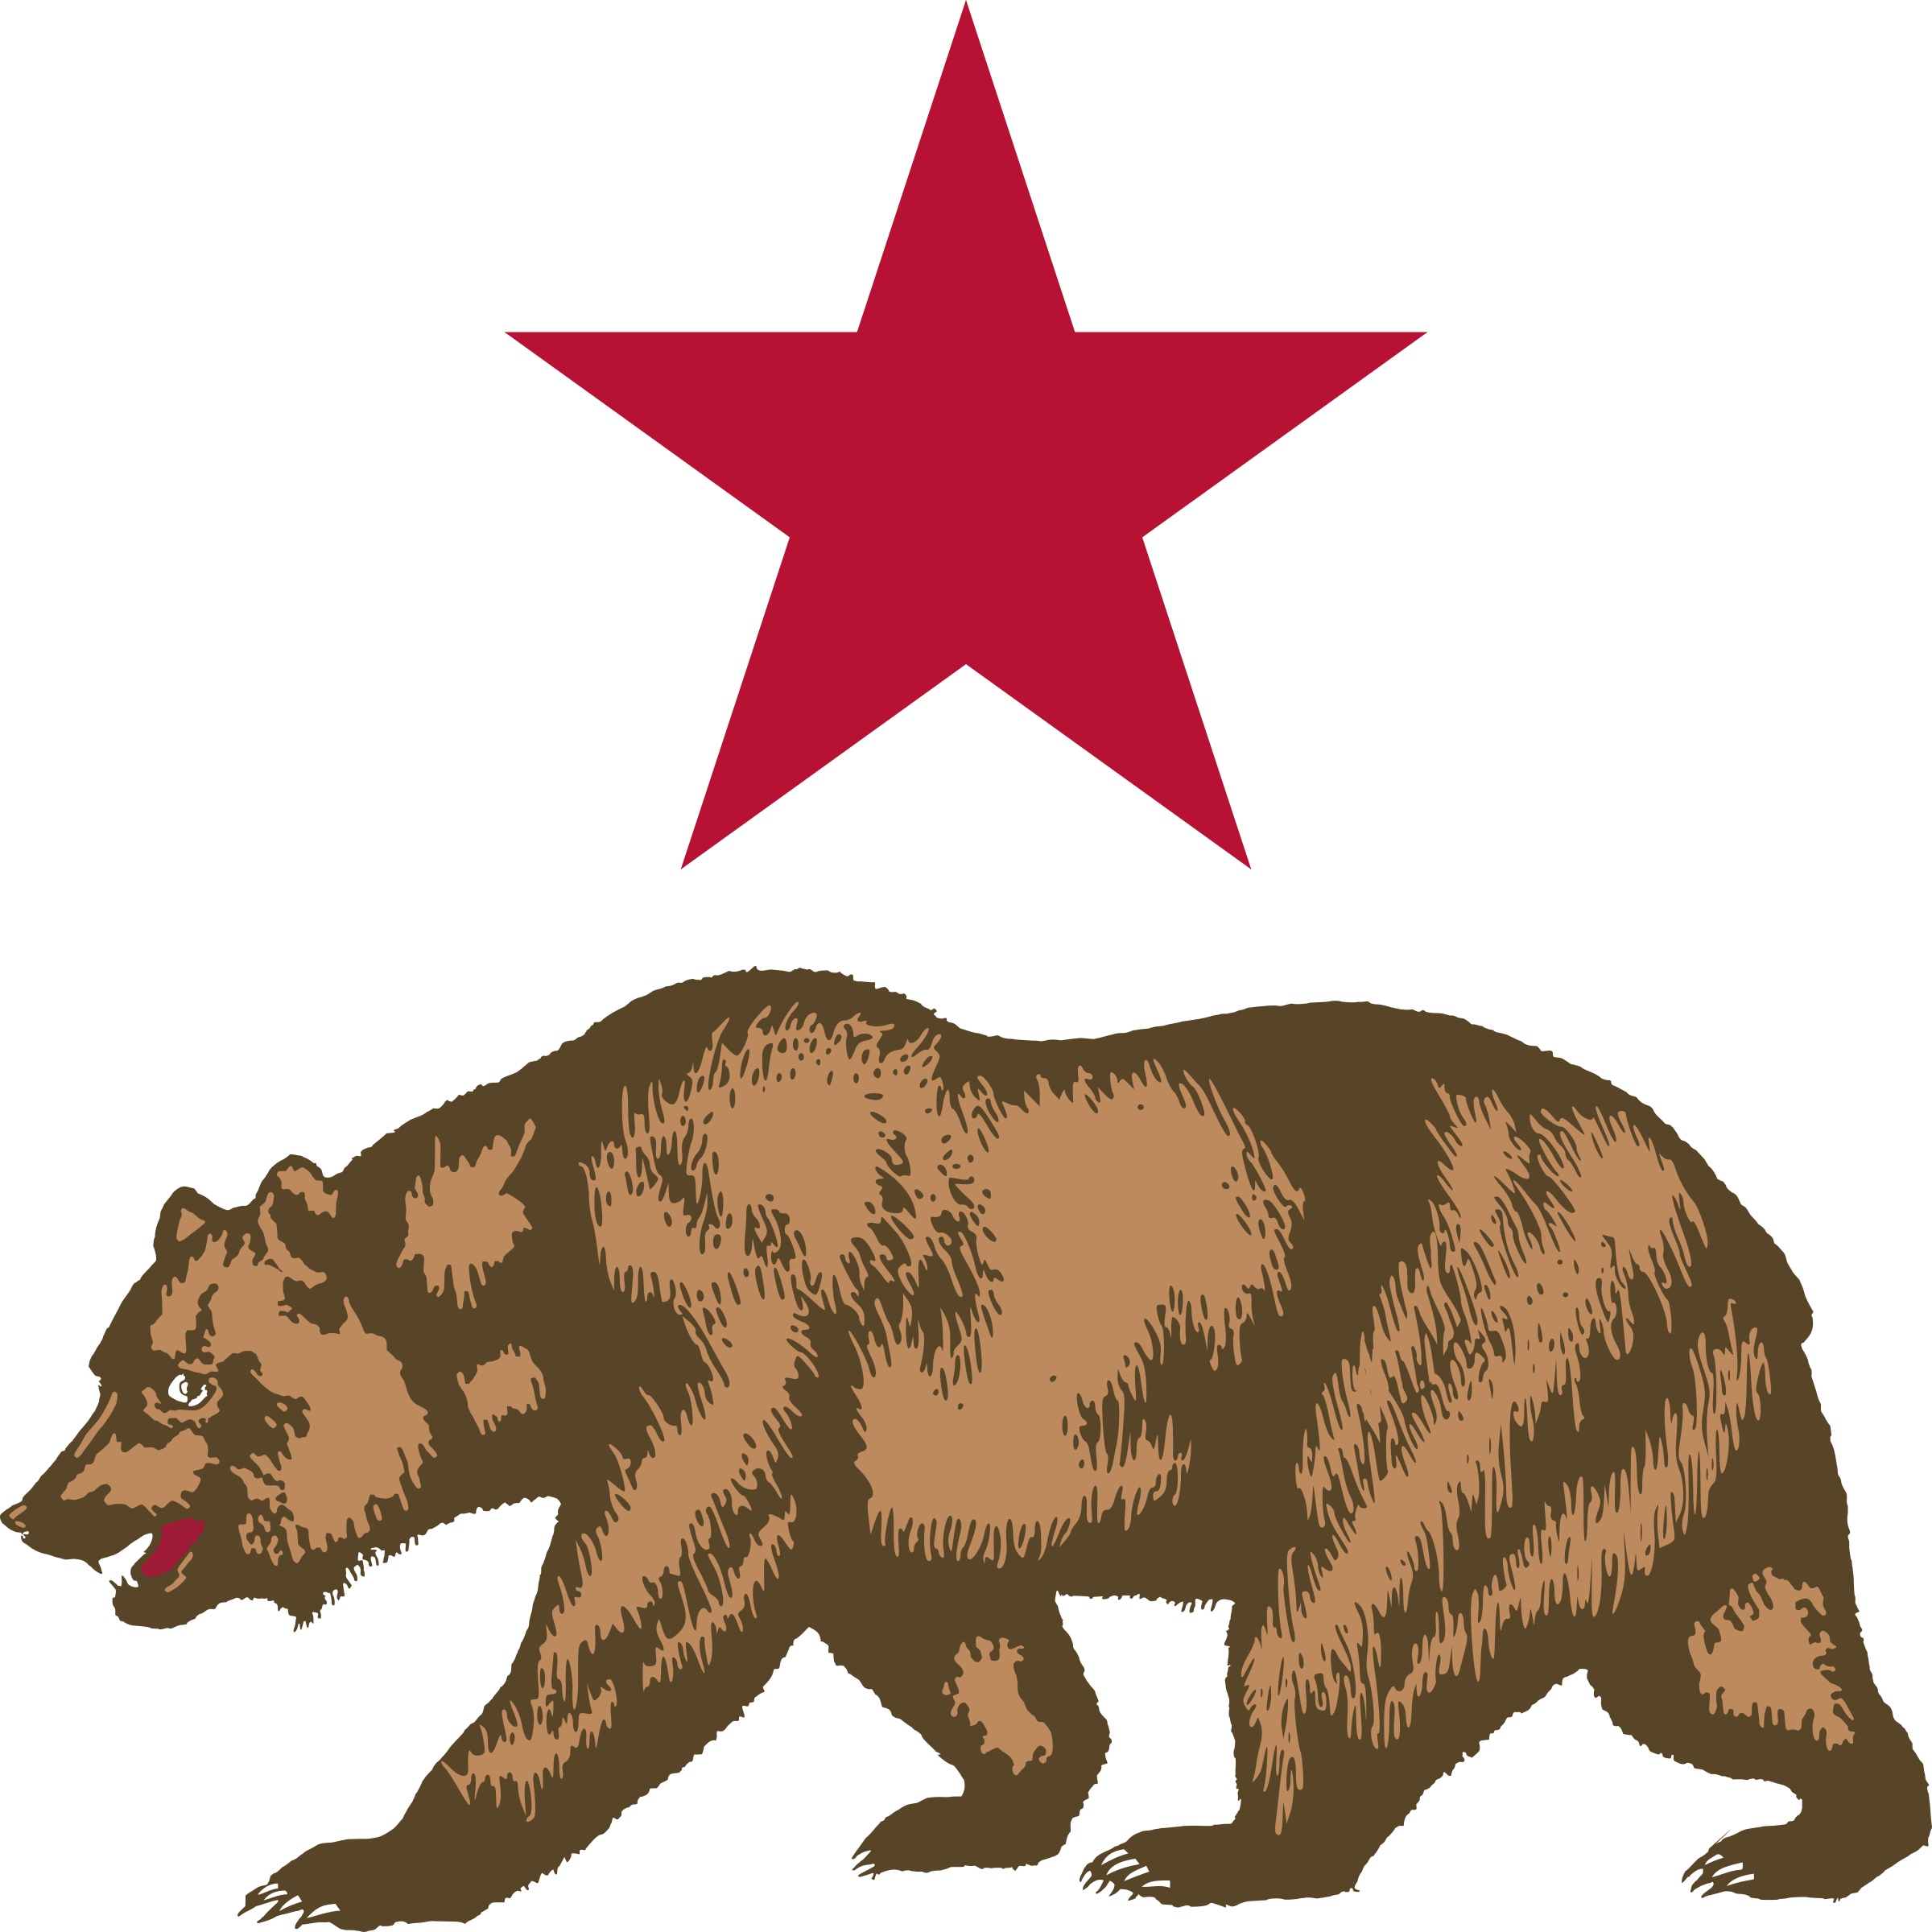 image download California clipart bear grizzly california. Star and icons png.